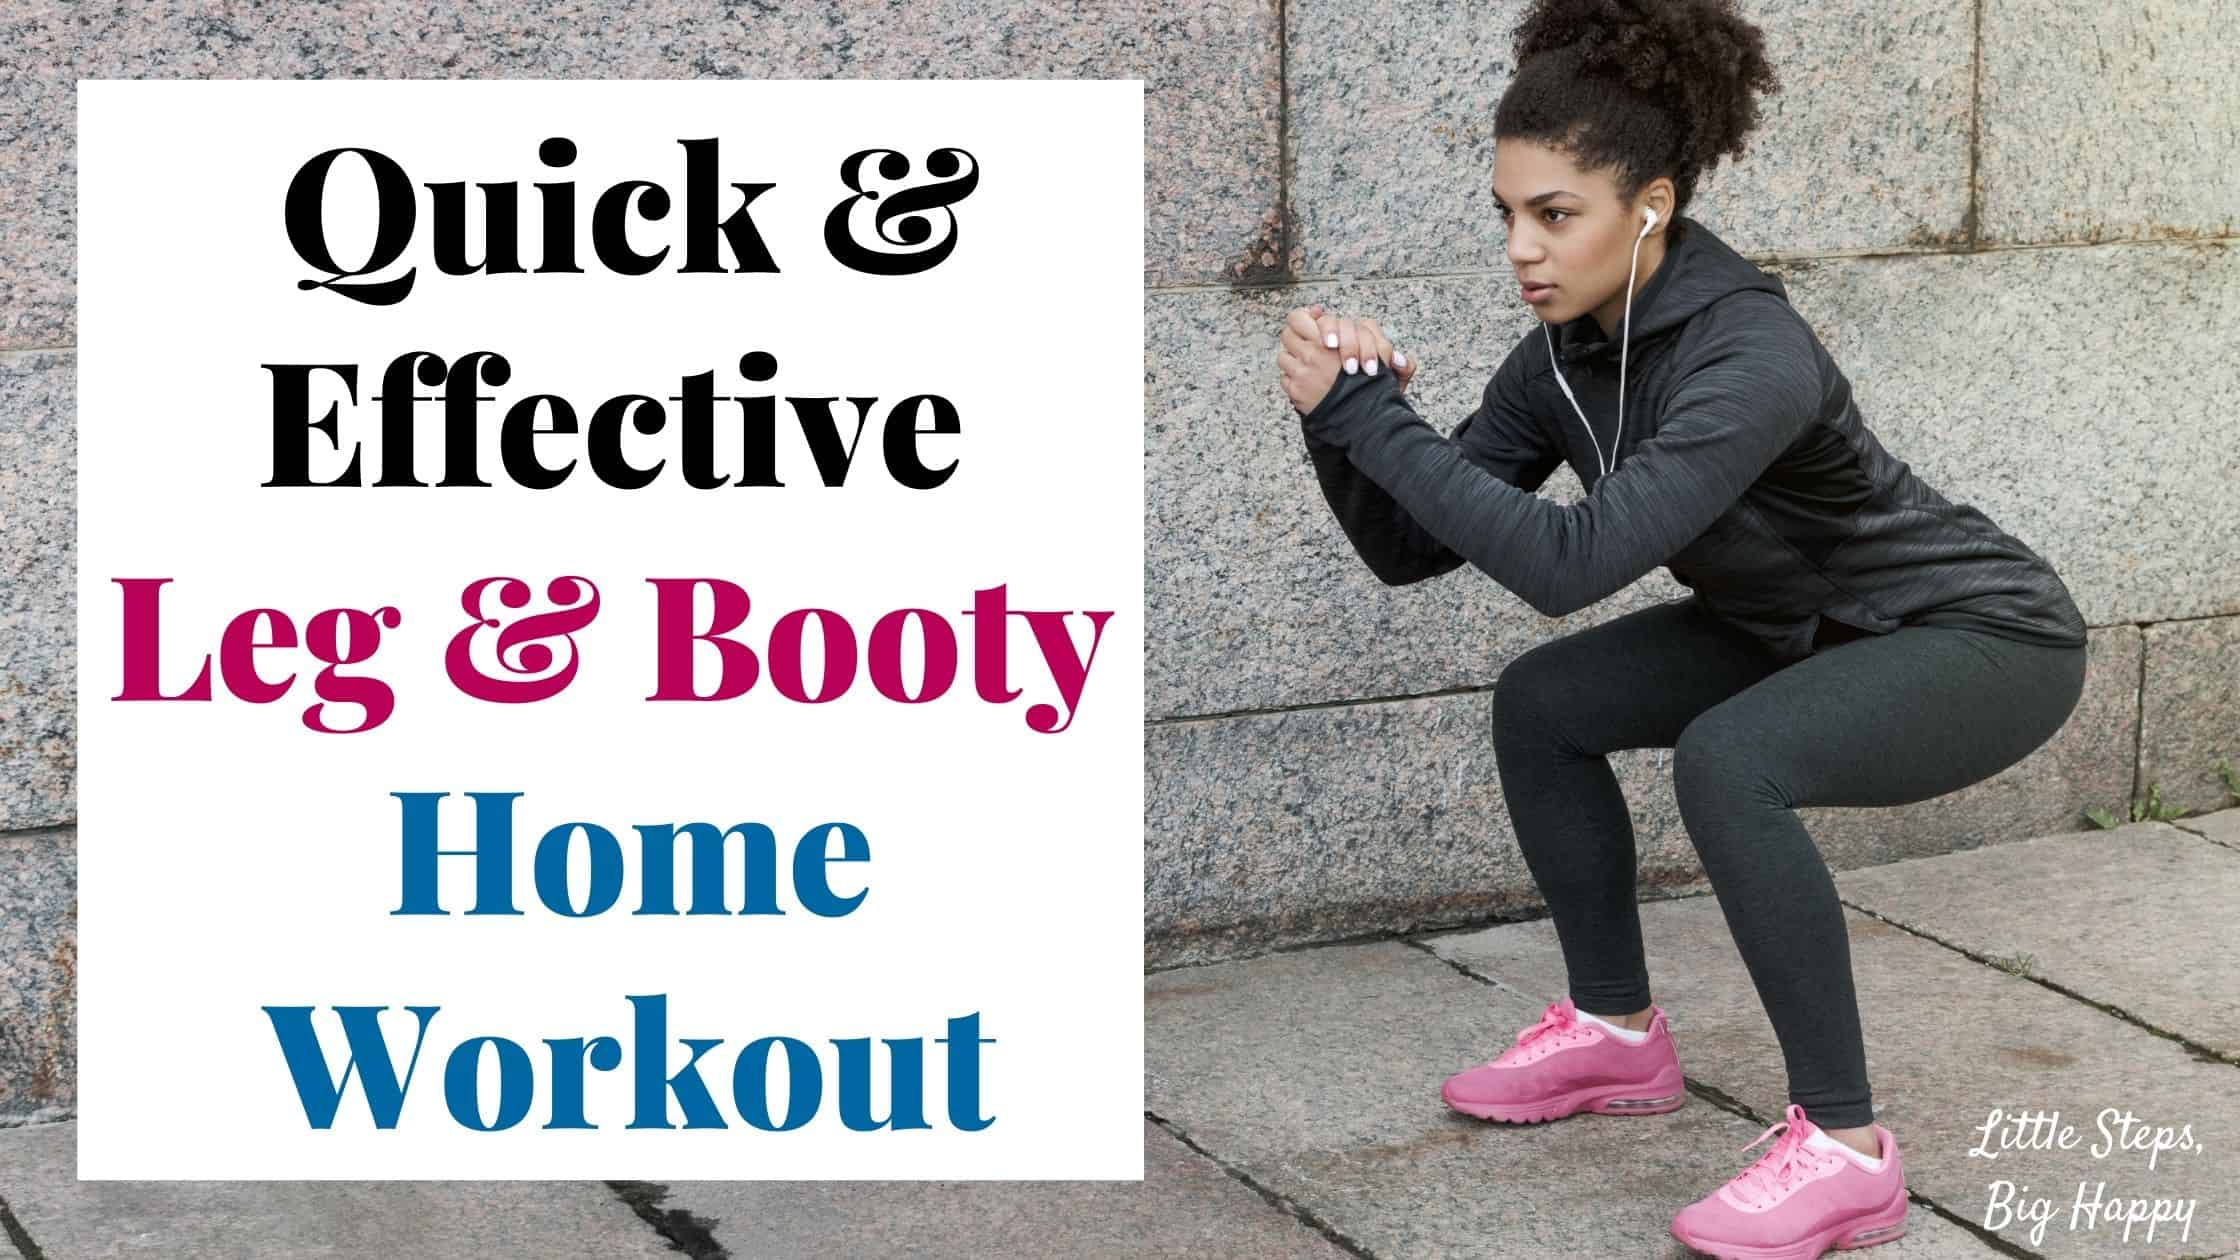 Quick & Effective Leg and Booty Home Workout